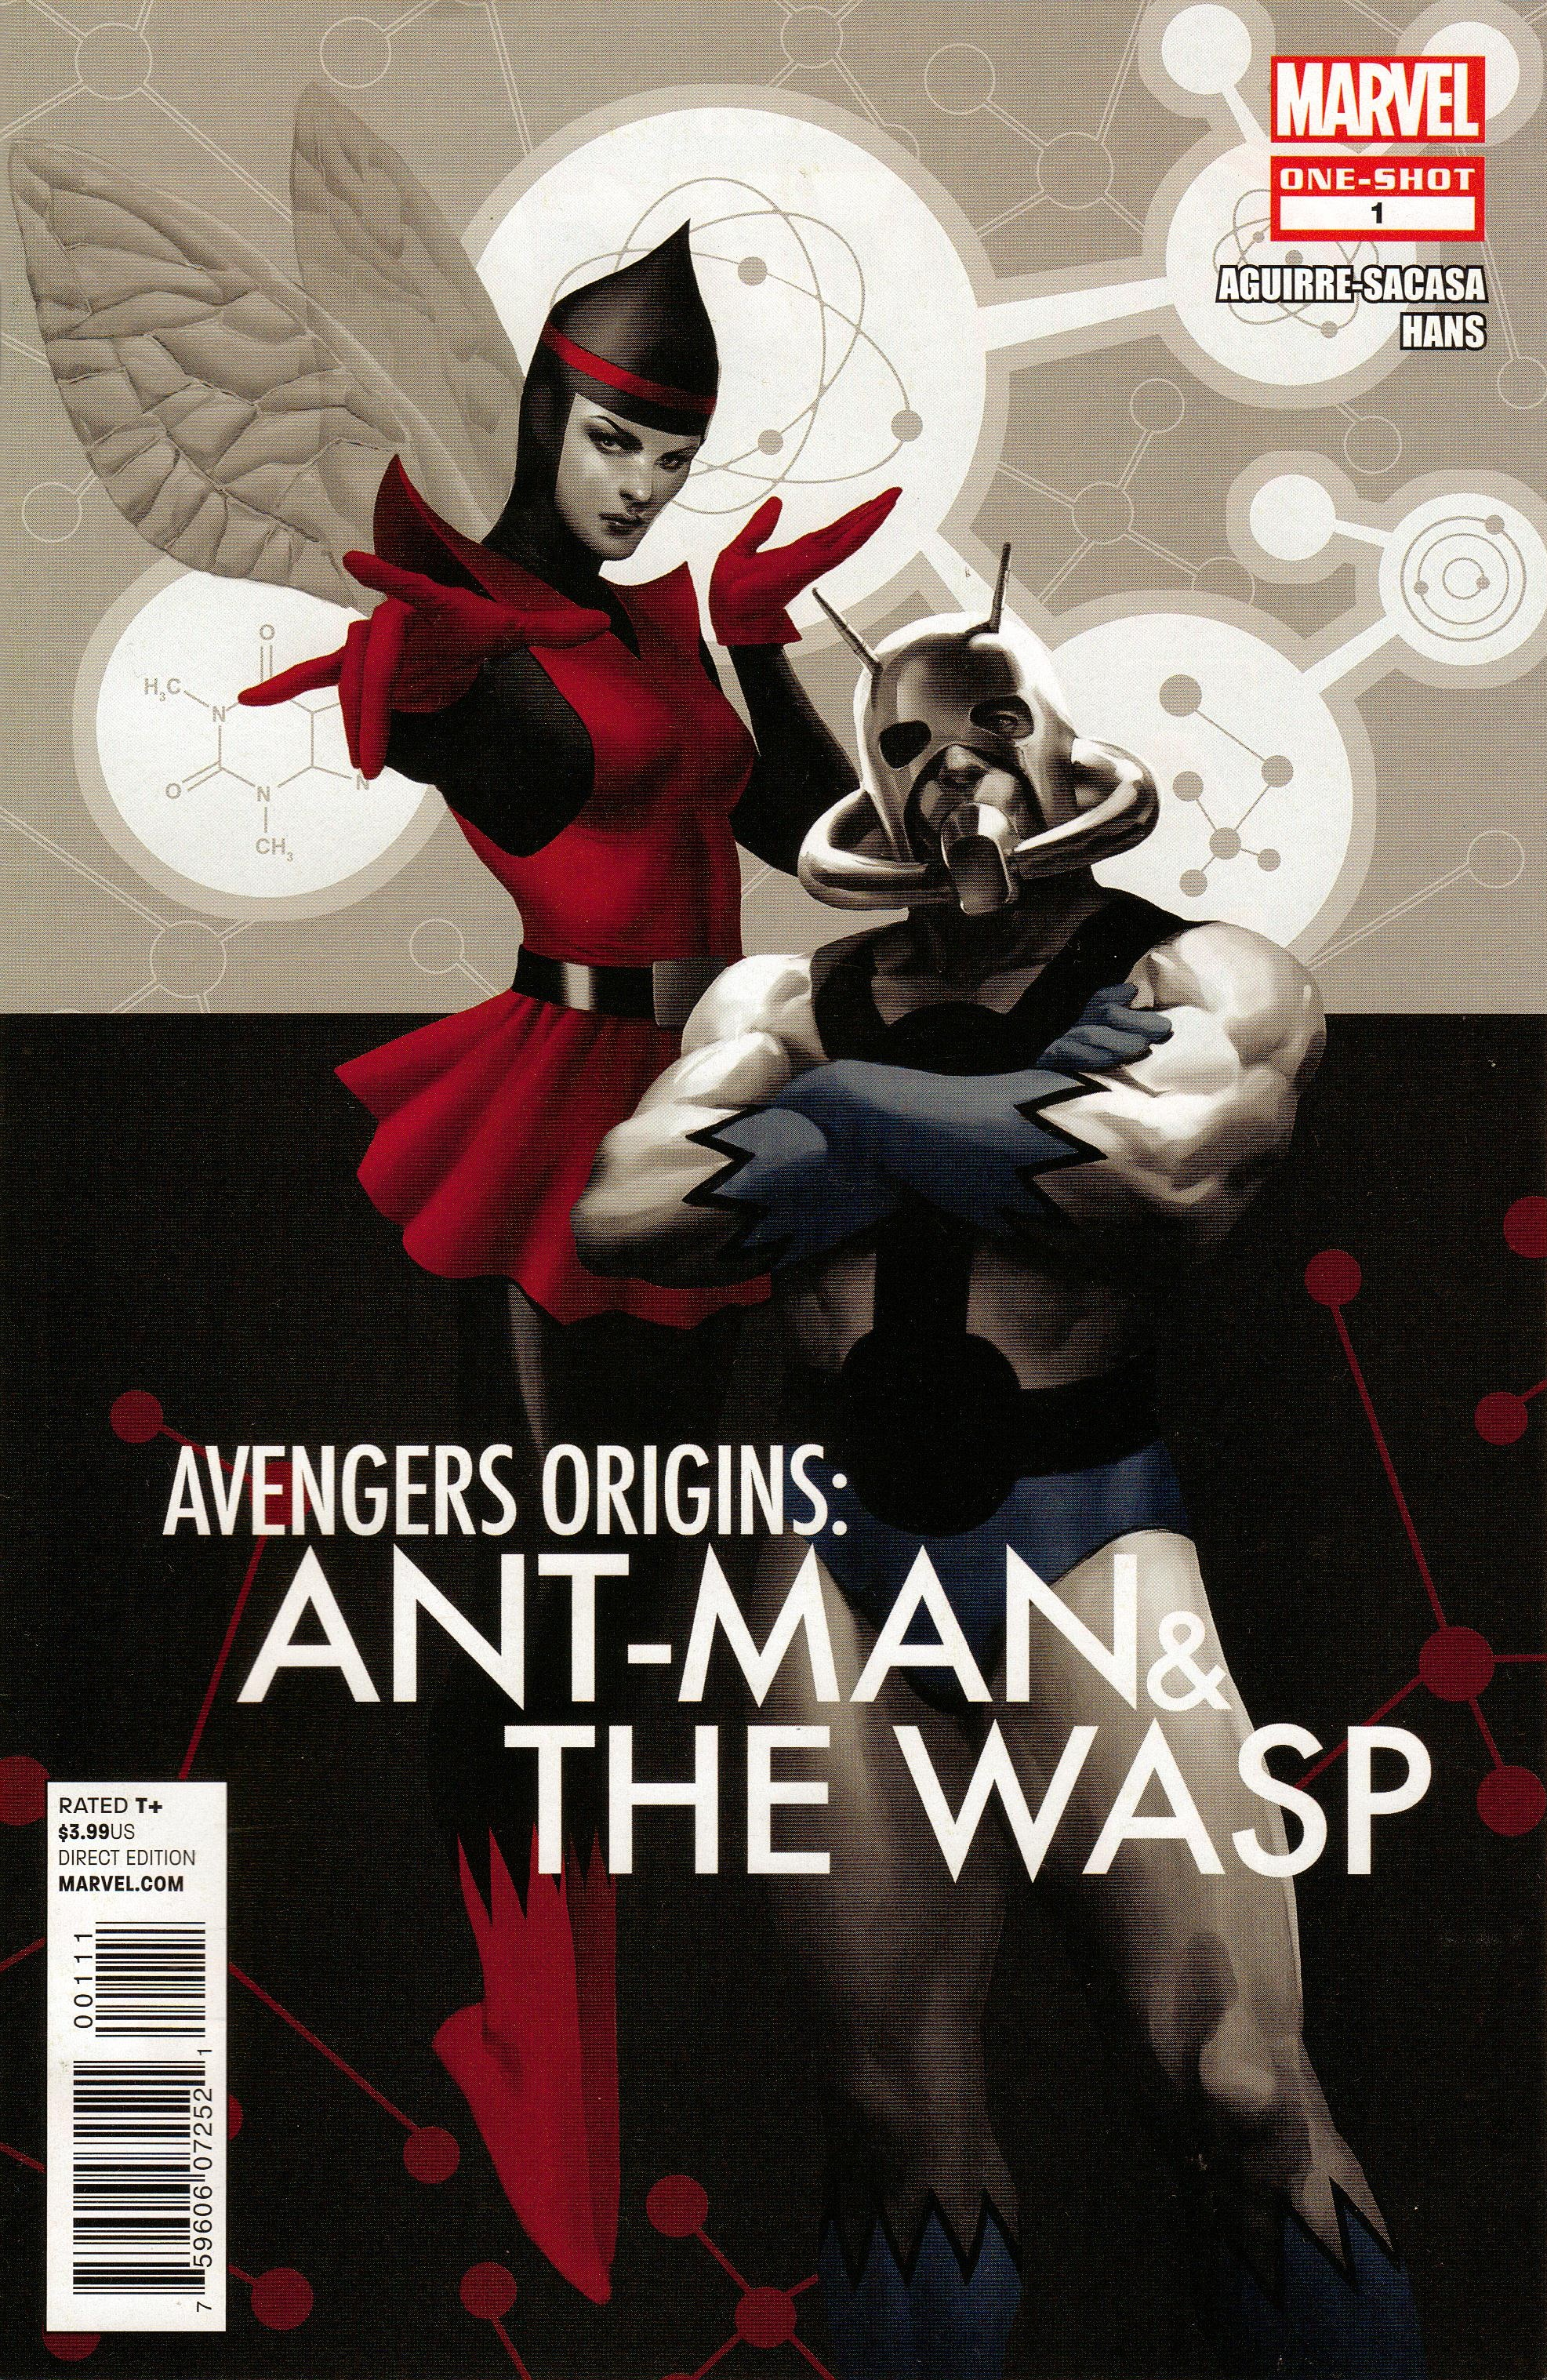 Avengers Origins: Ant-Man & the Wasp Vol 1 1